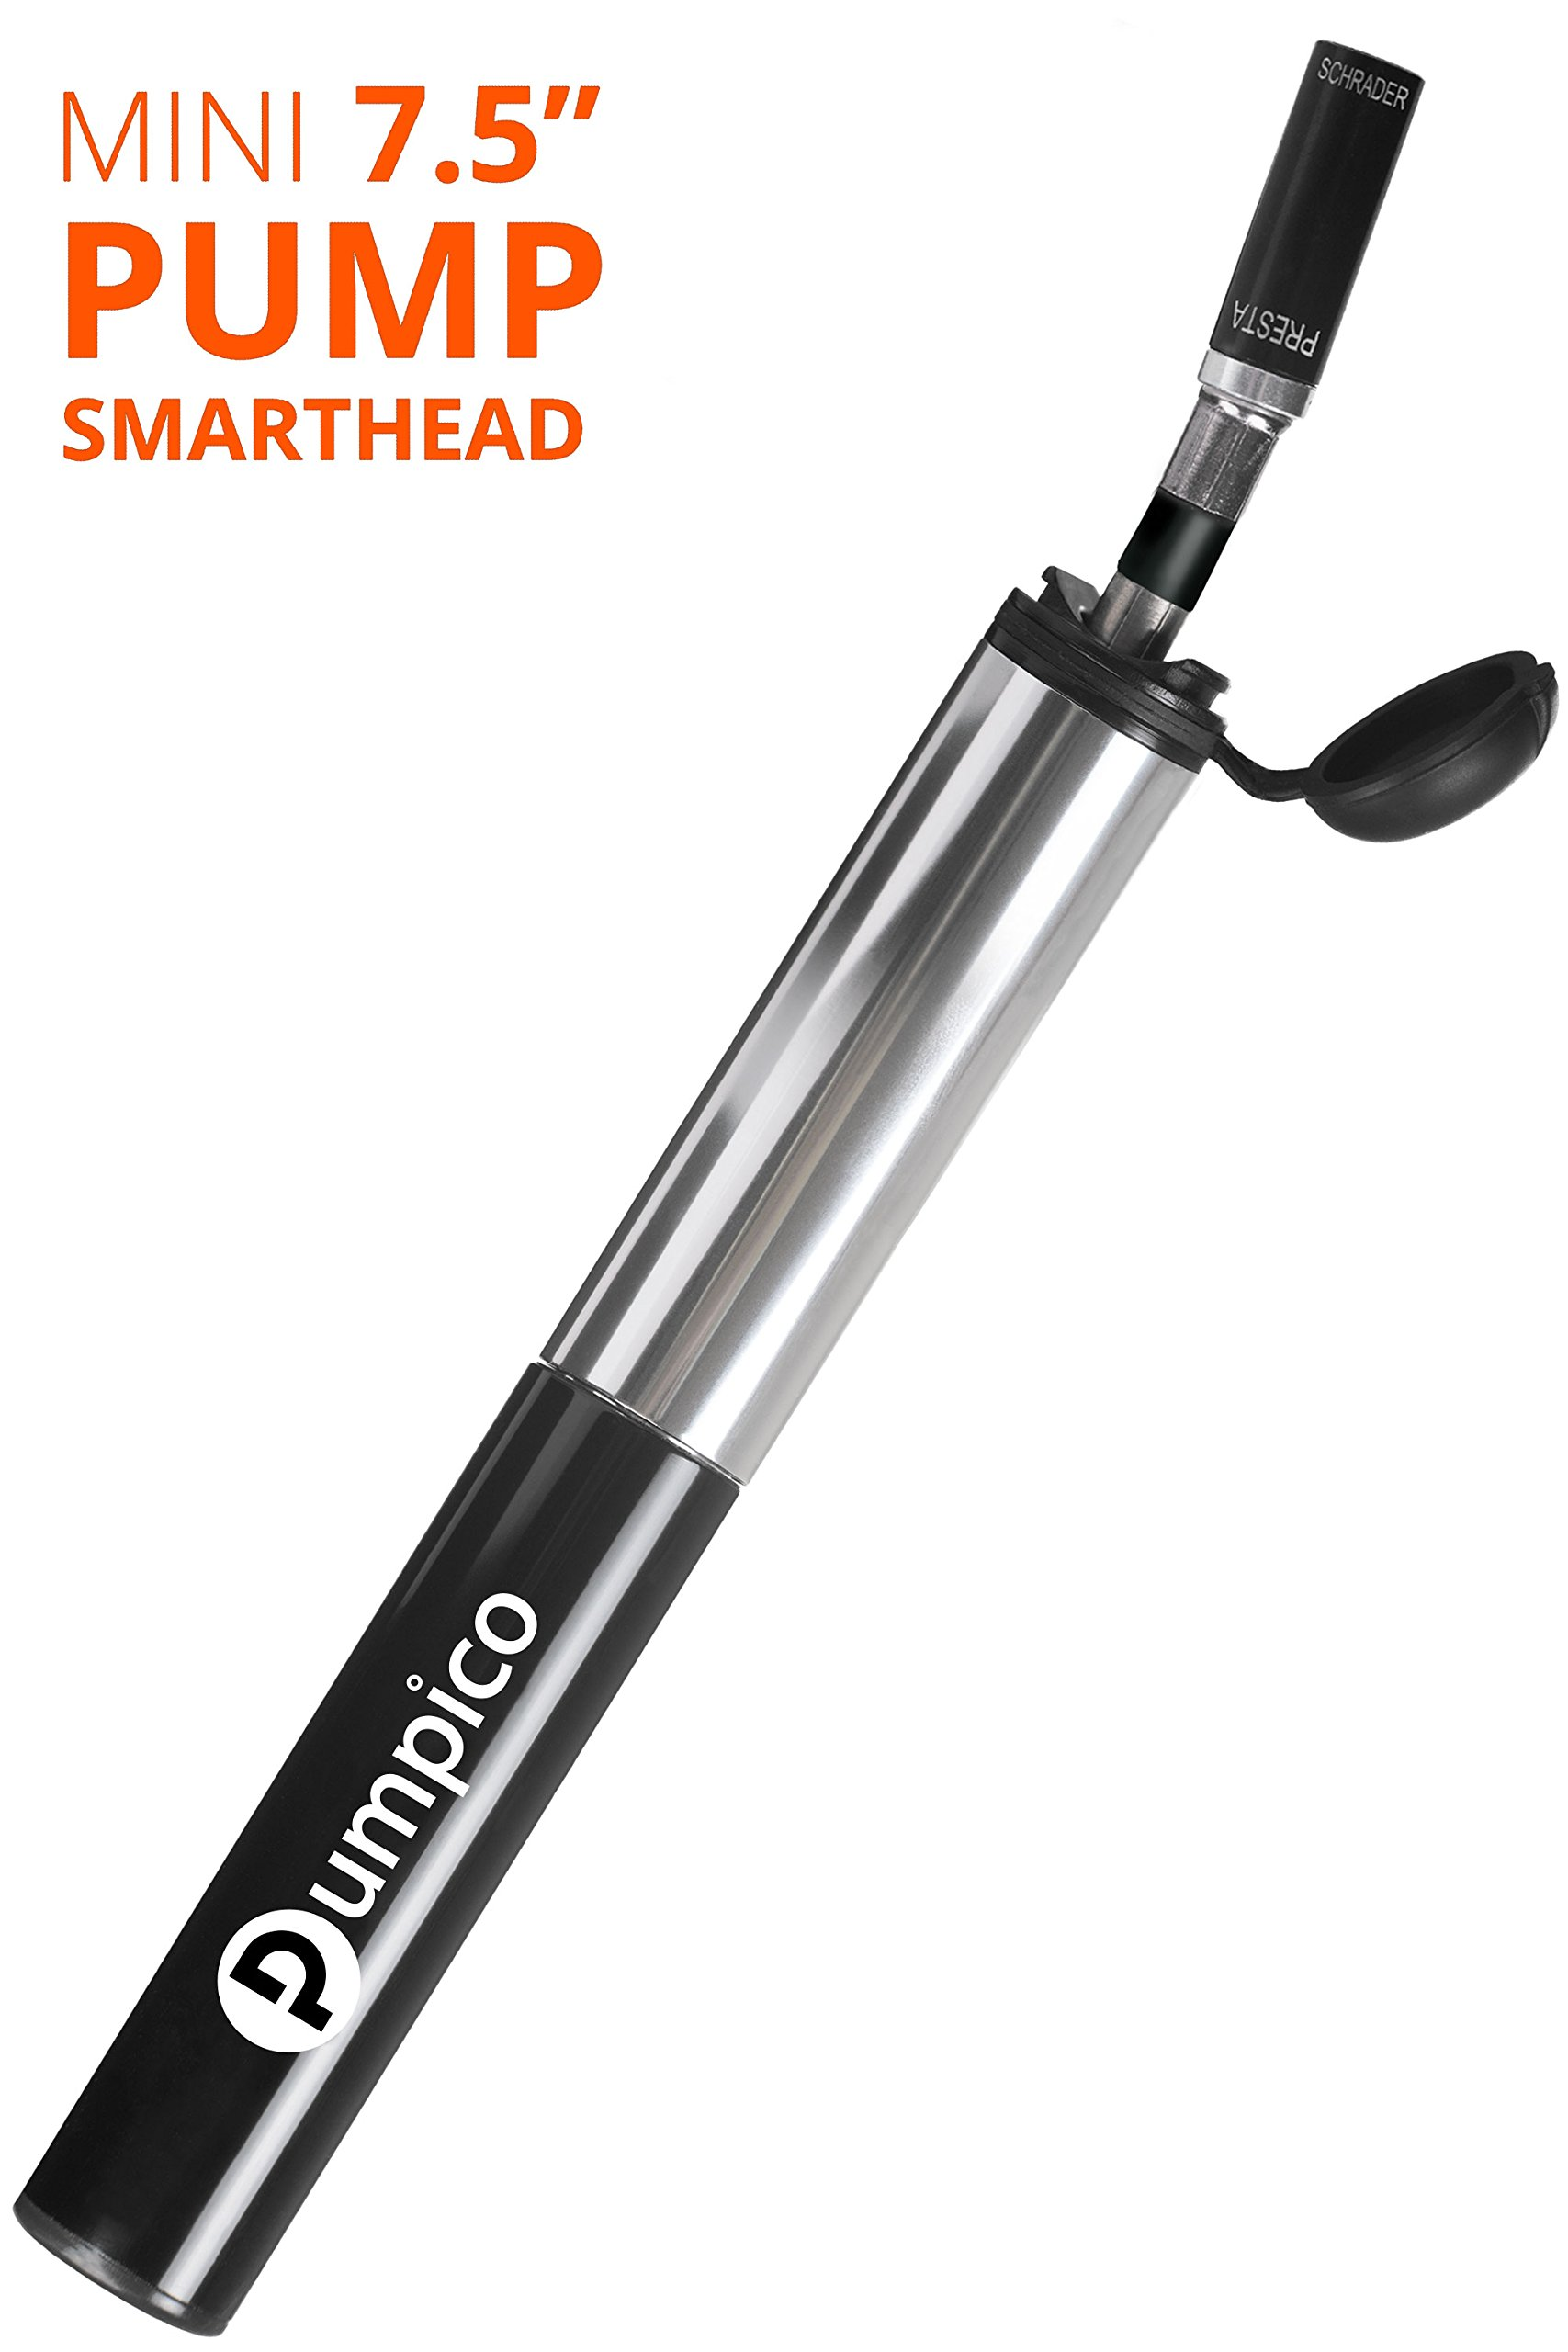 PUMPICO Bike Pump - Mini Bike Pump - Bicycle Pump - Presta And Schrader Valve Pump - Functional and Sturdy Aluminum Alloy Body and Ergonomical Handle with Smarthead Nozzle – Pressure Up to 140 PSI